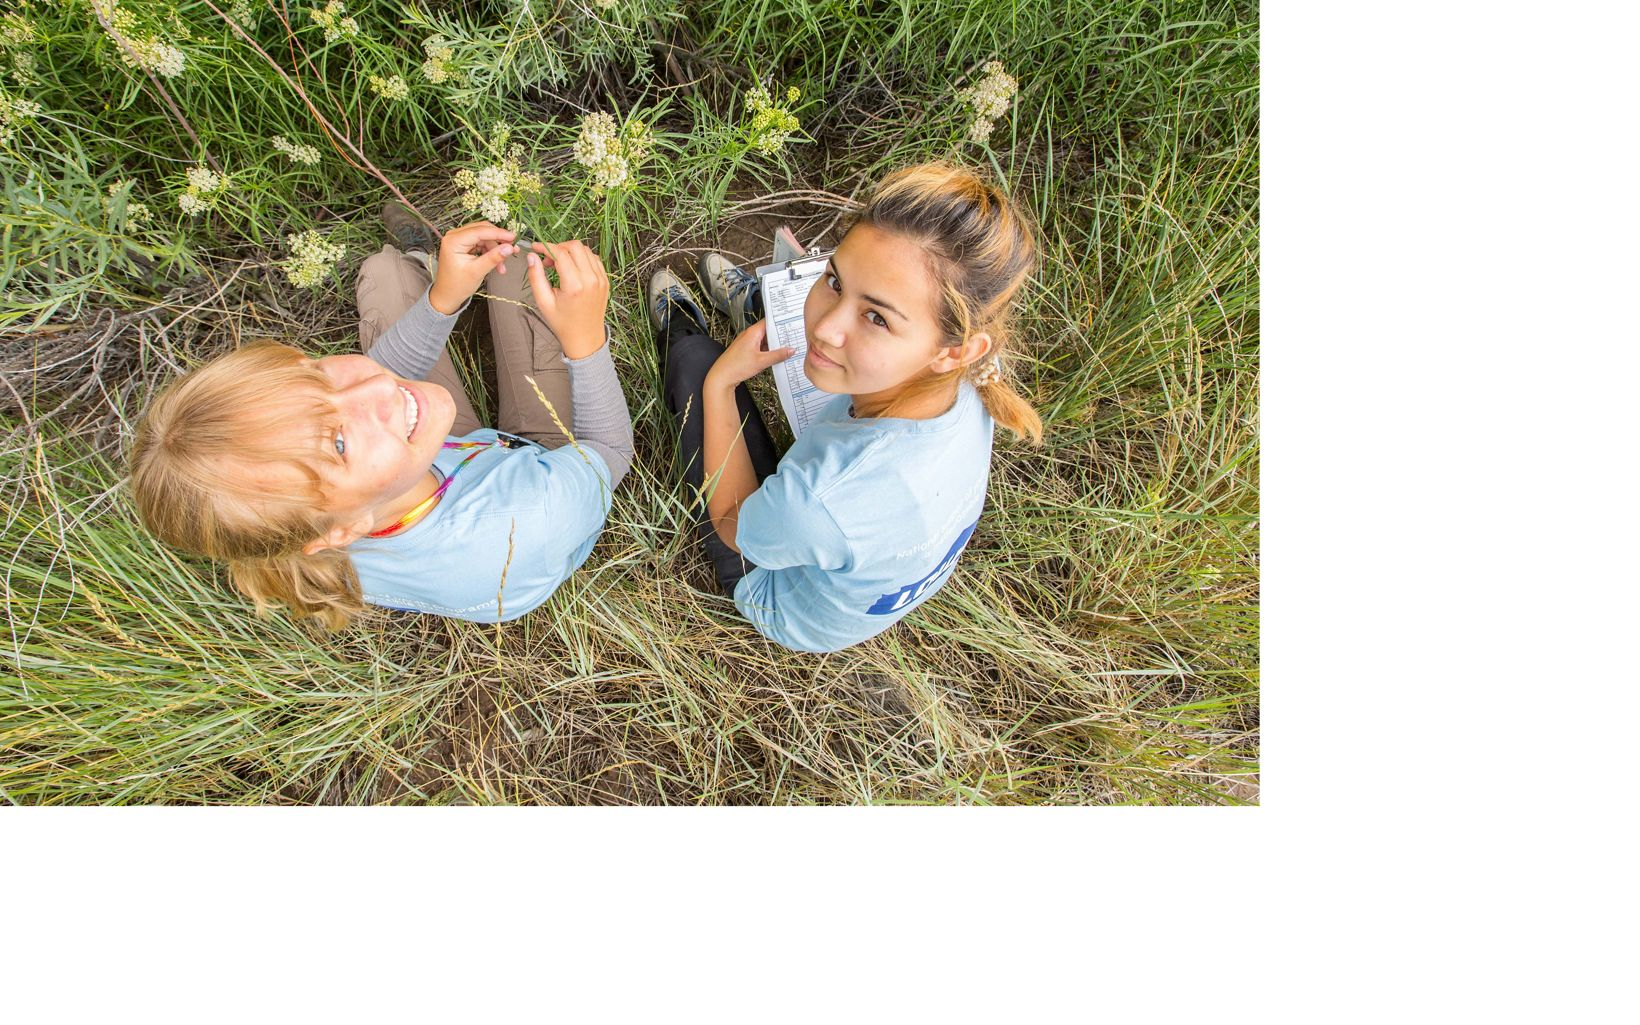 two young girls in a field looking up